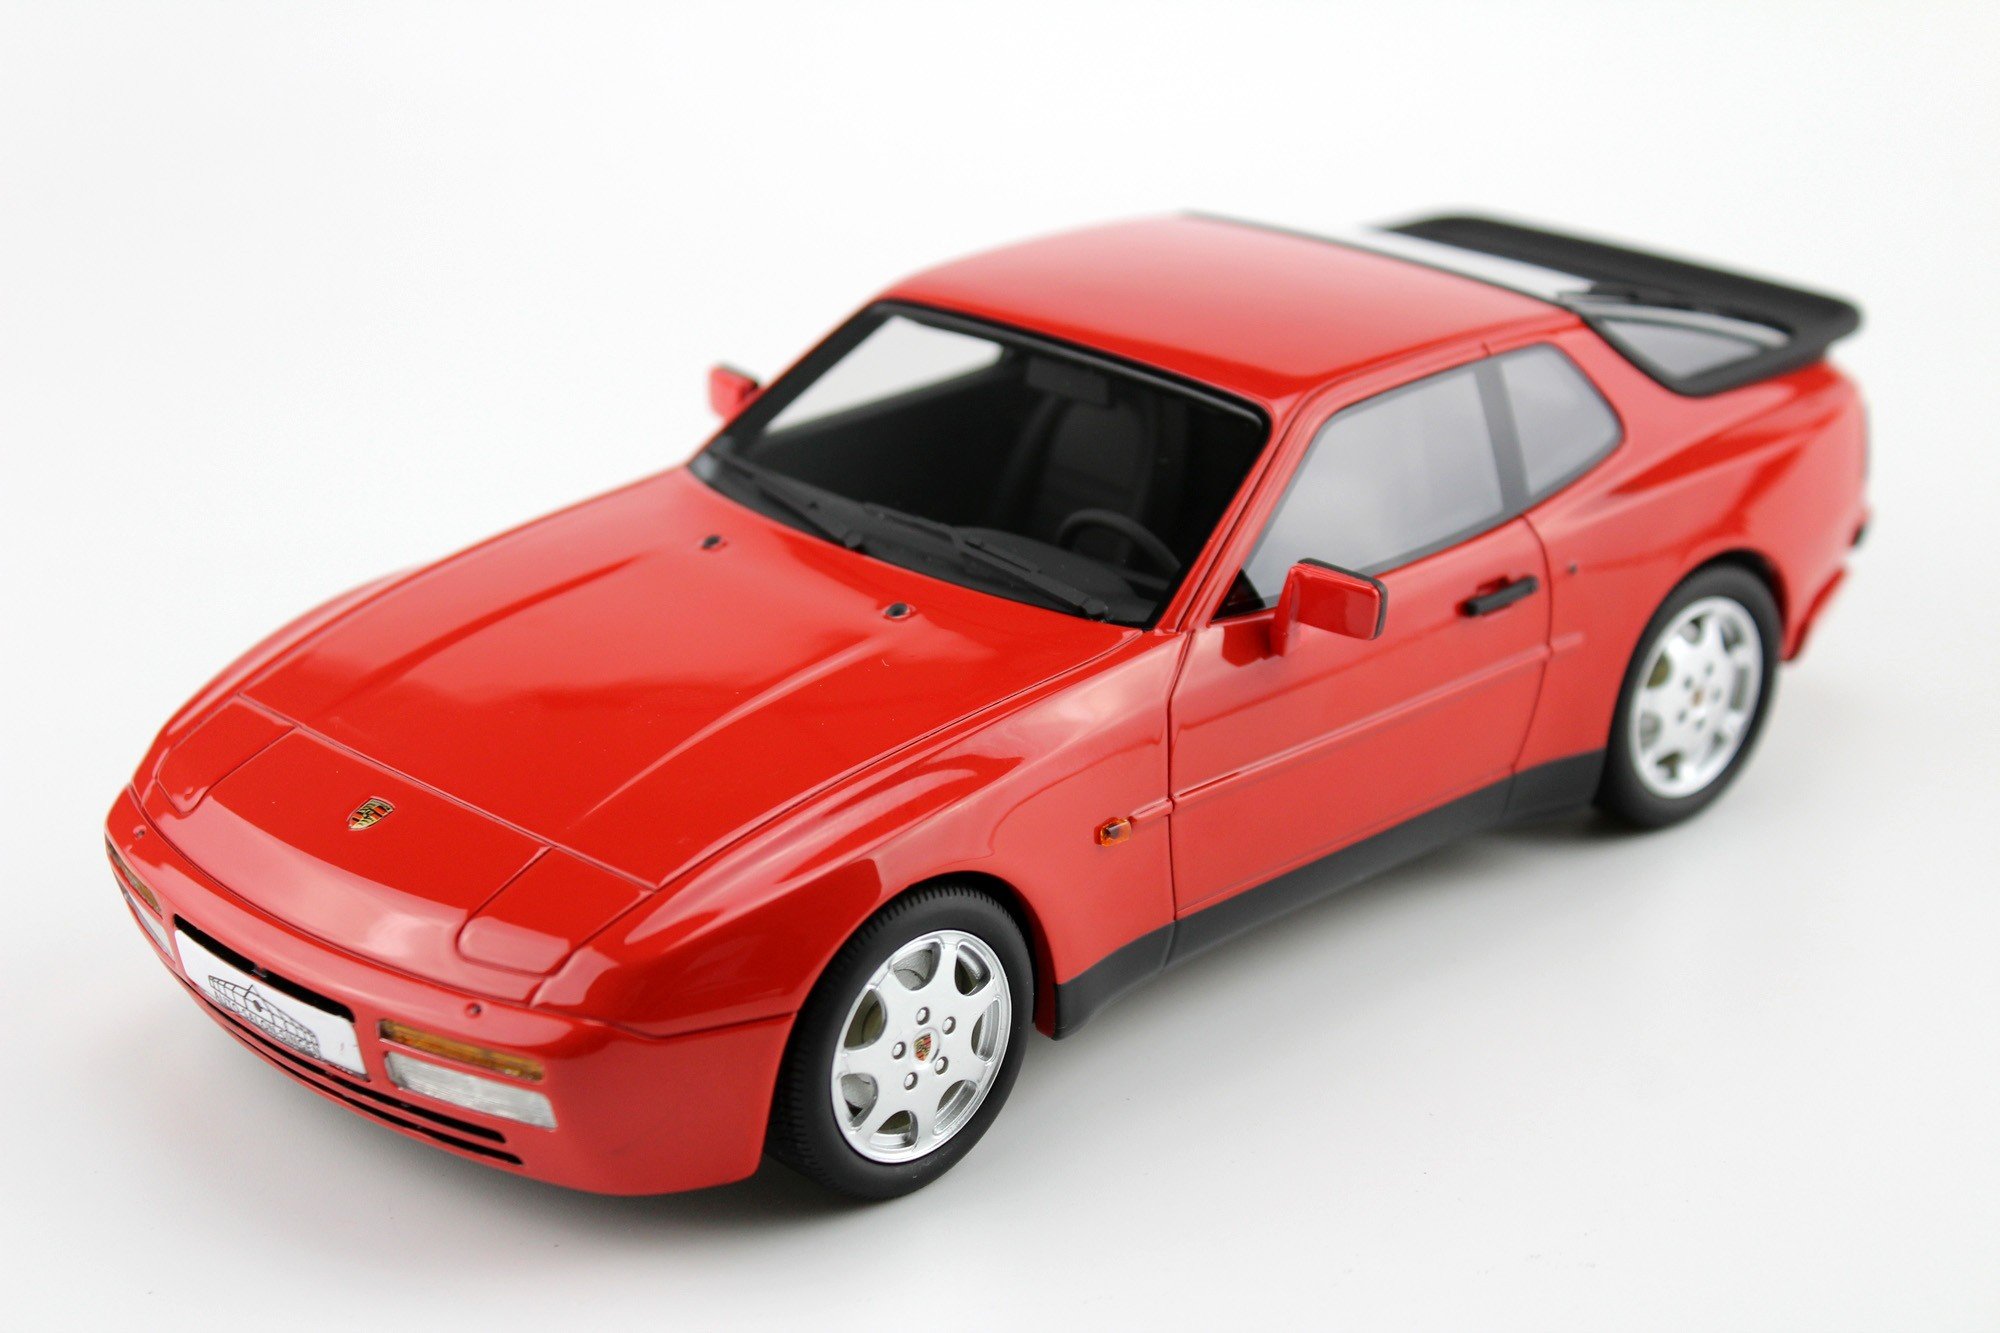 ls collectibles porsche 944 turbo s pre order 1 18 red ls023b